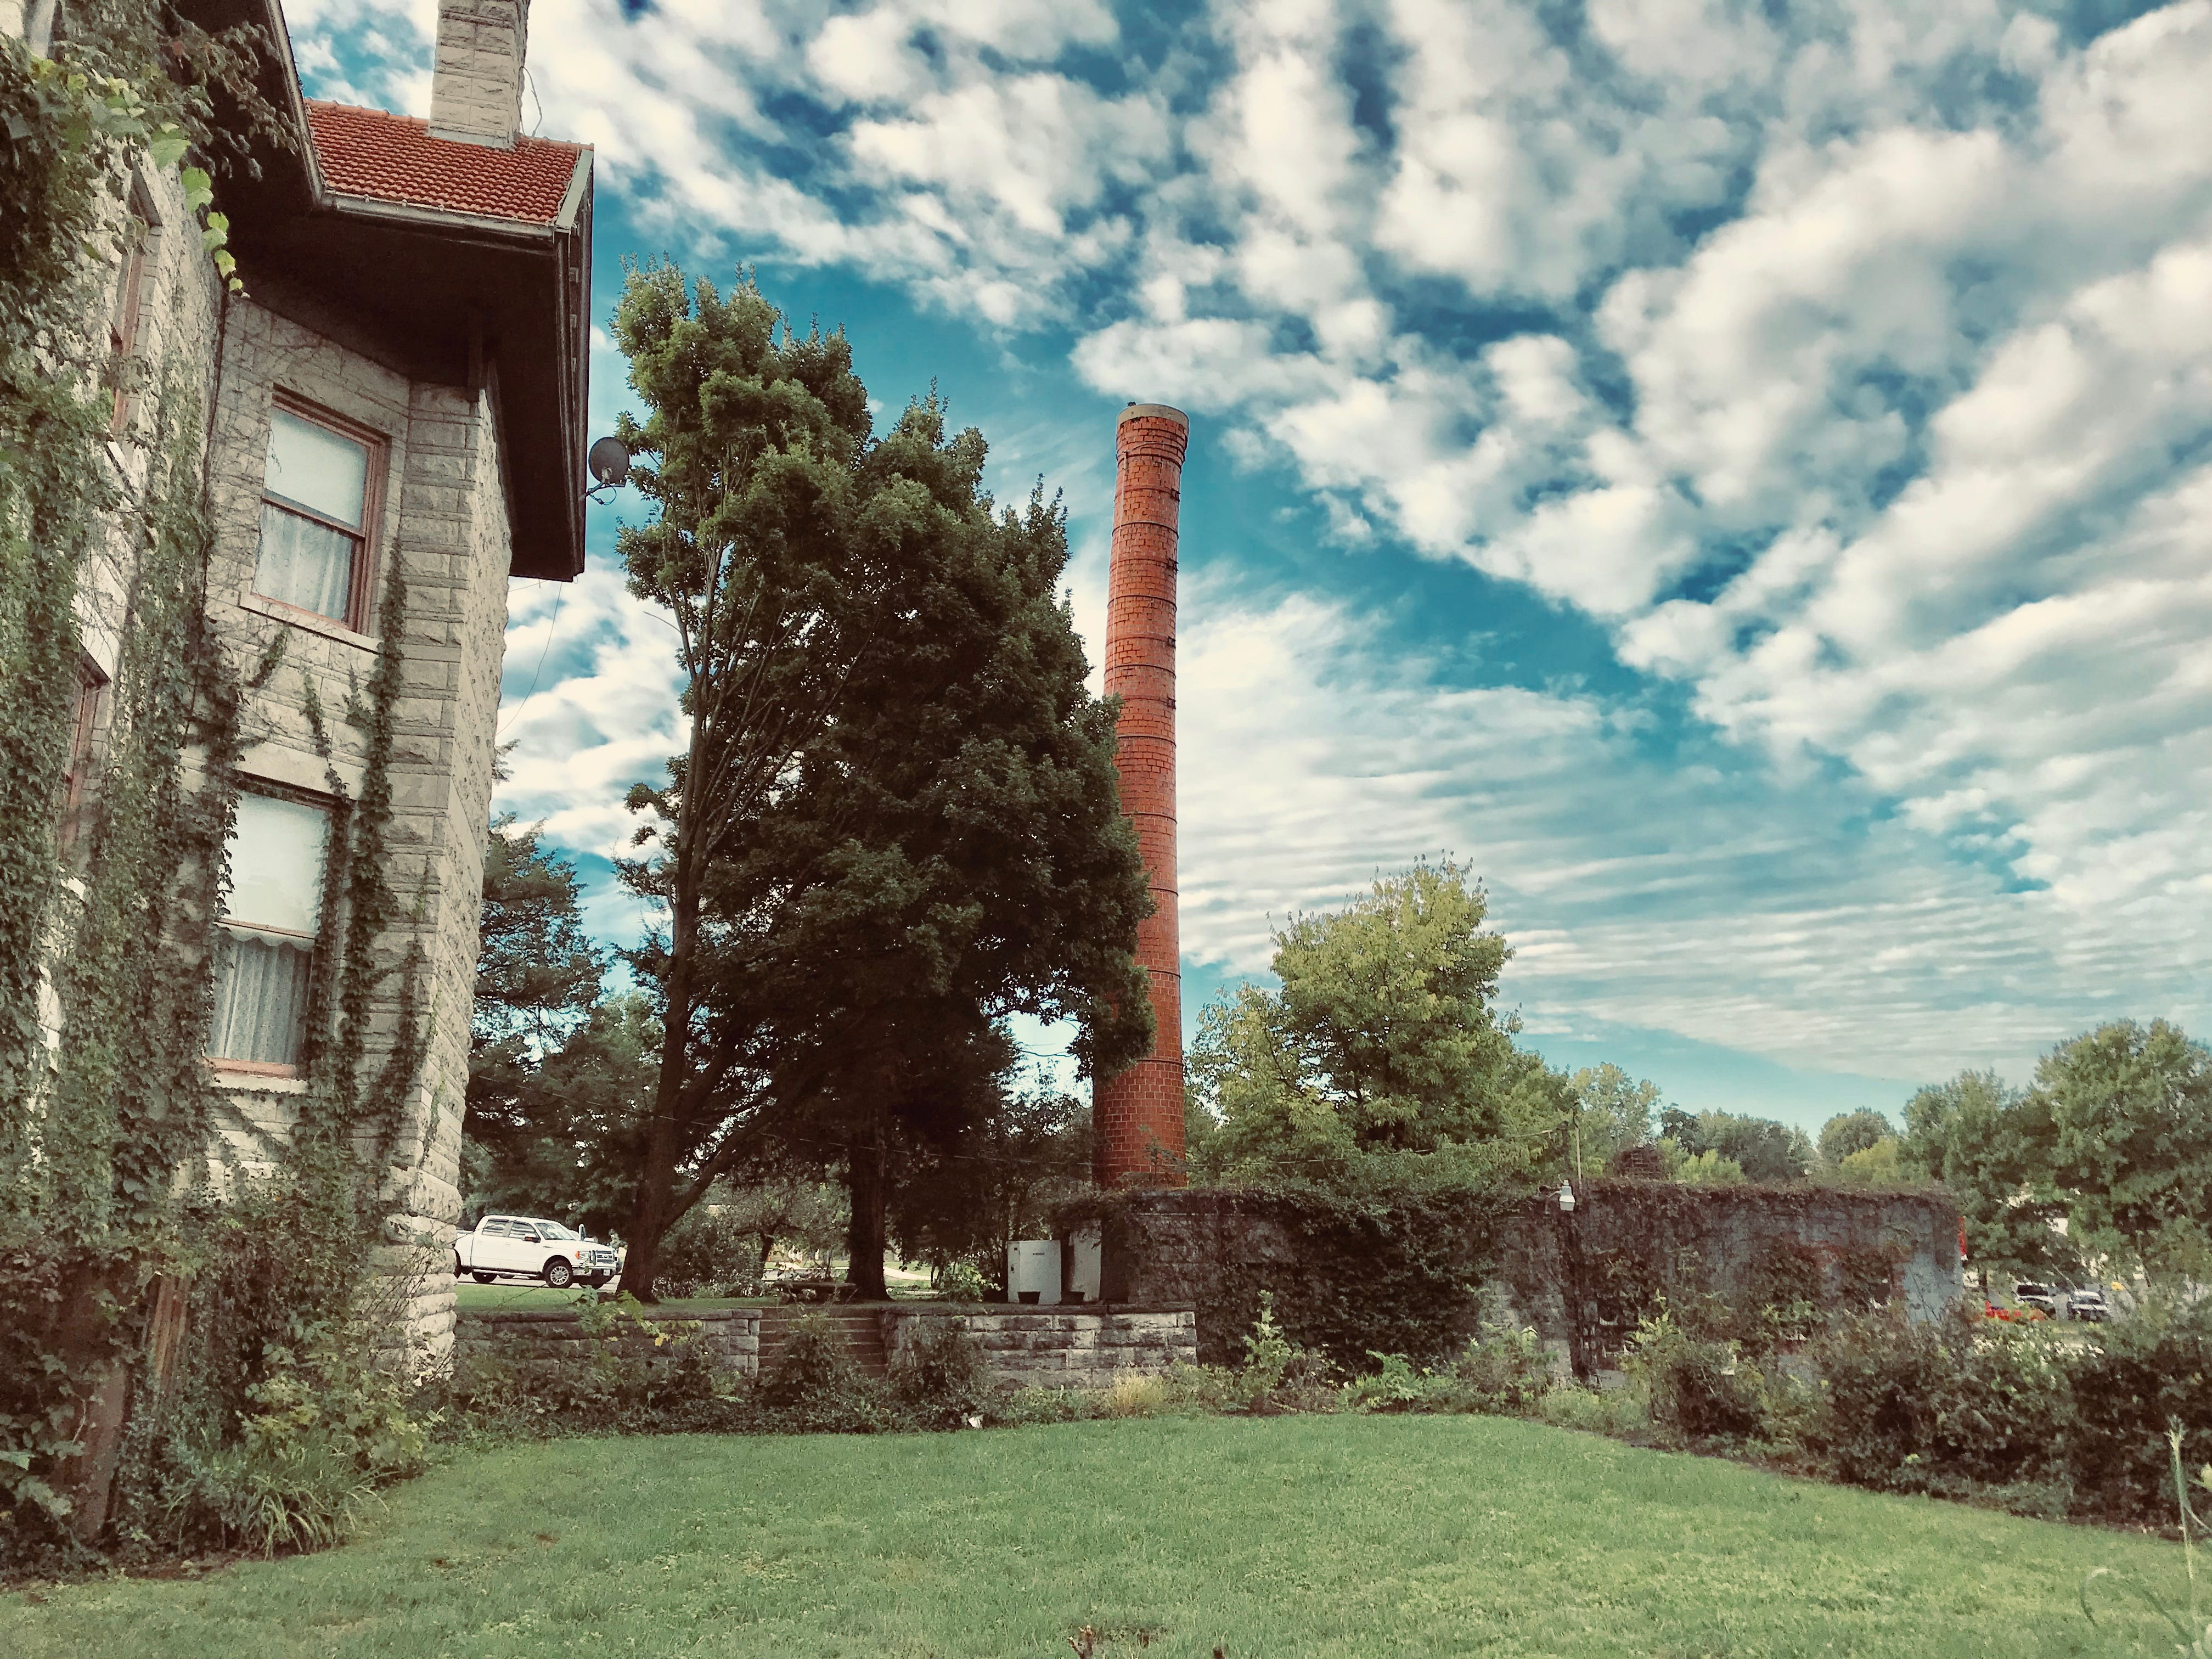 The chimney at the Elfindale Mansion was built as part of the original power plant for the building back in 1892.  The mansion was heated by steam that was piped to radiators.  Yes, it's crooked.